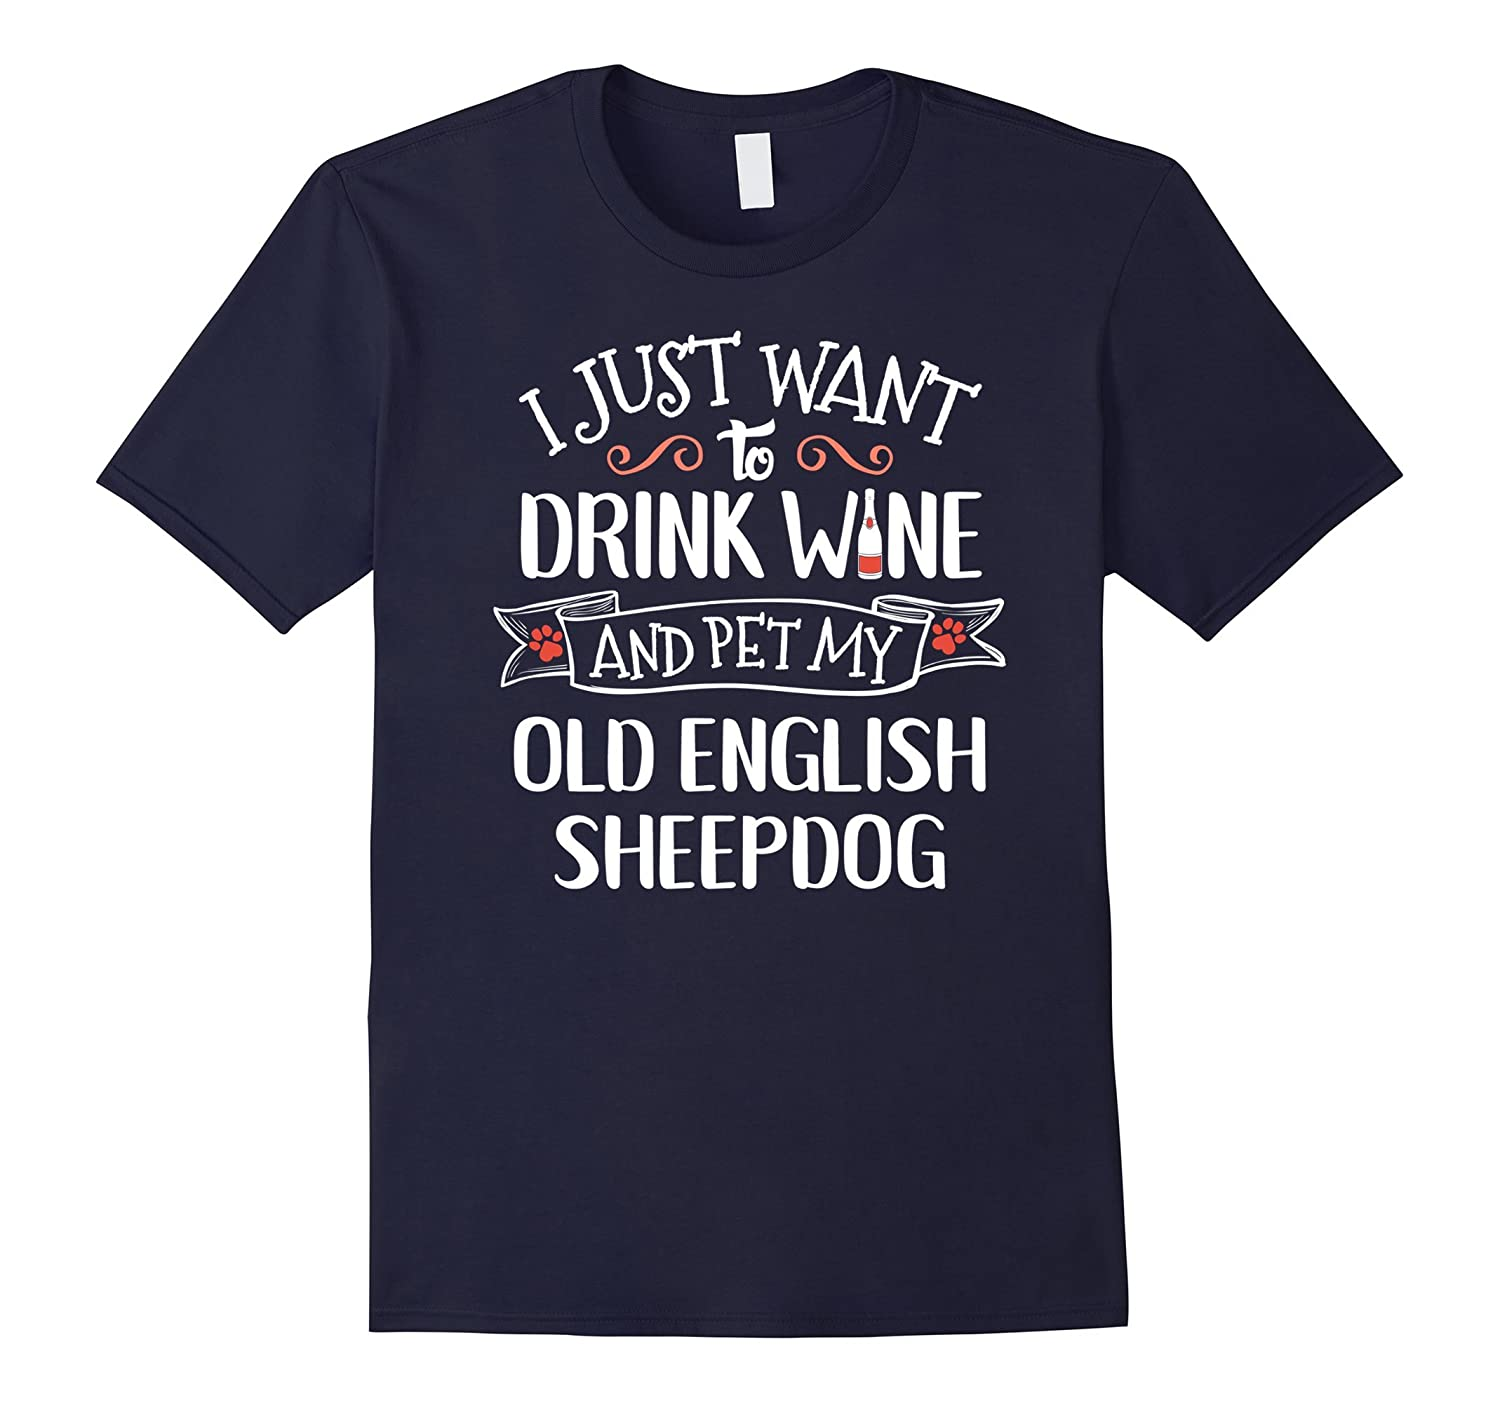 Old English Sheepdog T-Shirt for Wine Lovers  Dog Owners